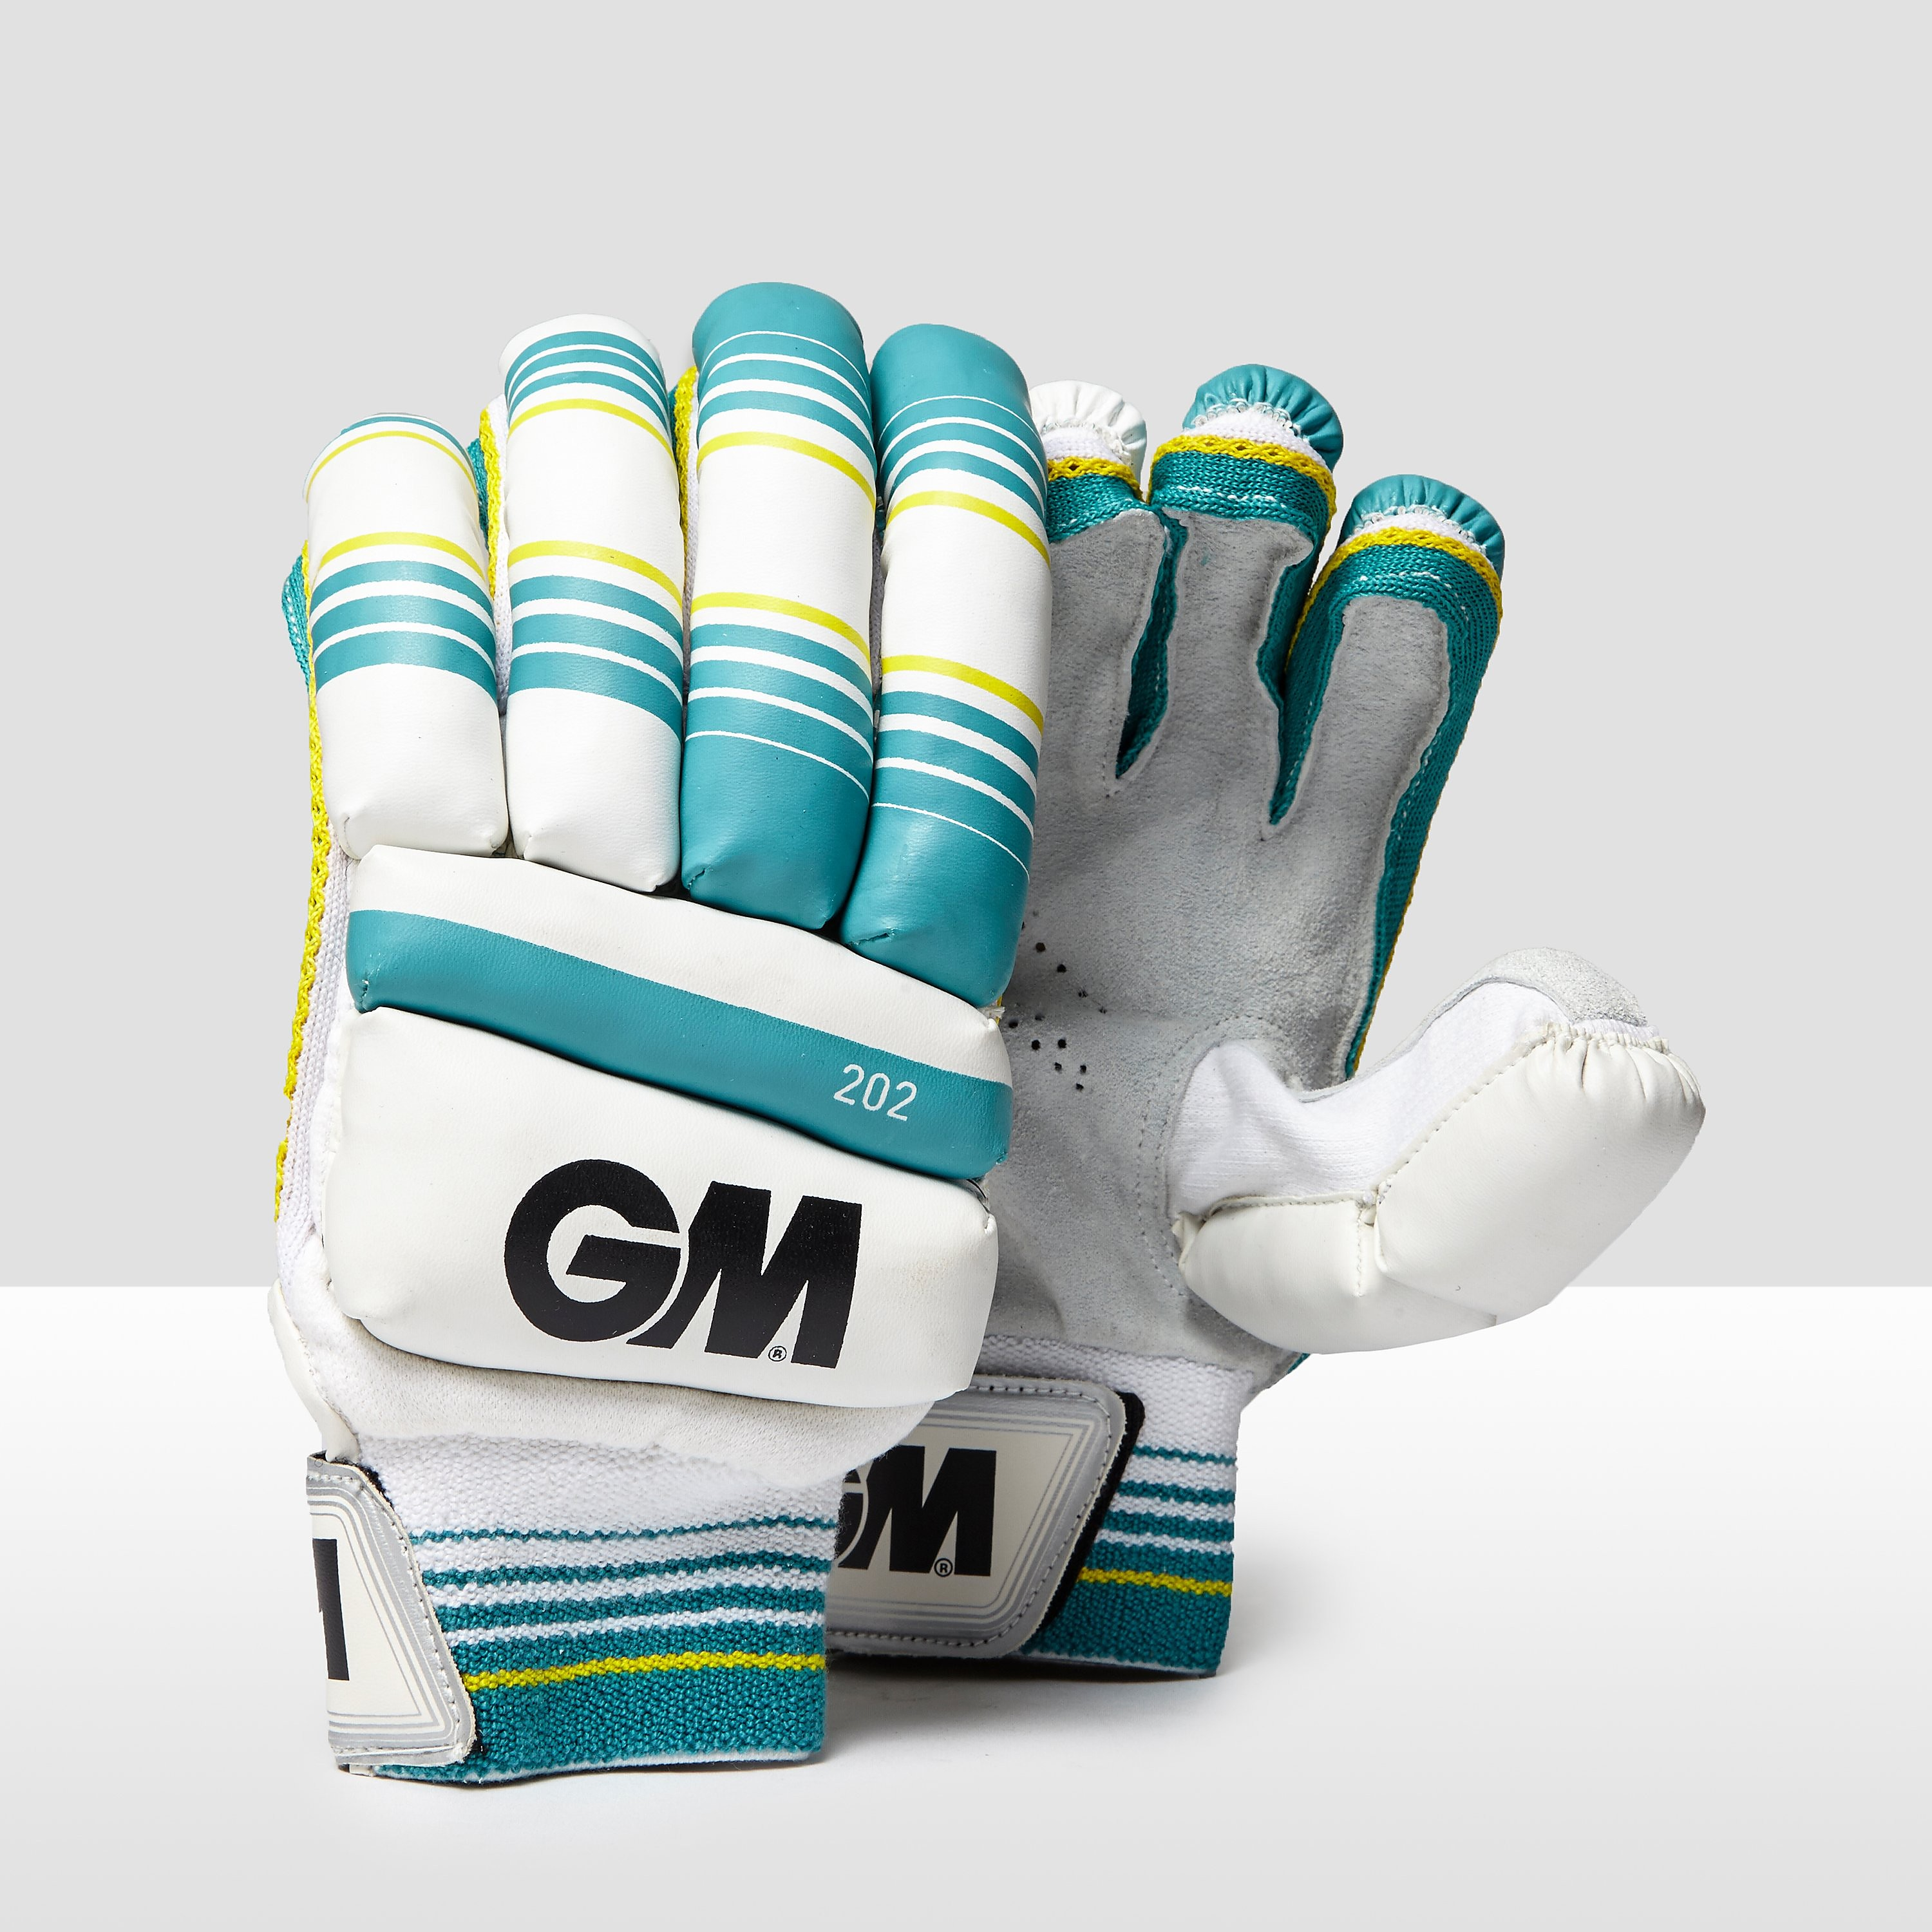 Gunn & Moore 202 BATTING GLOVES